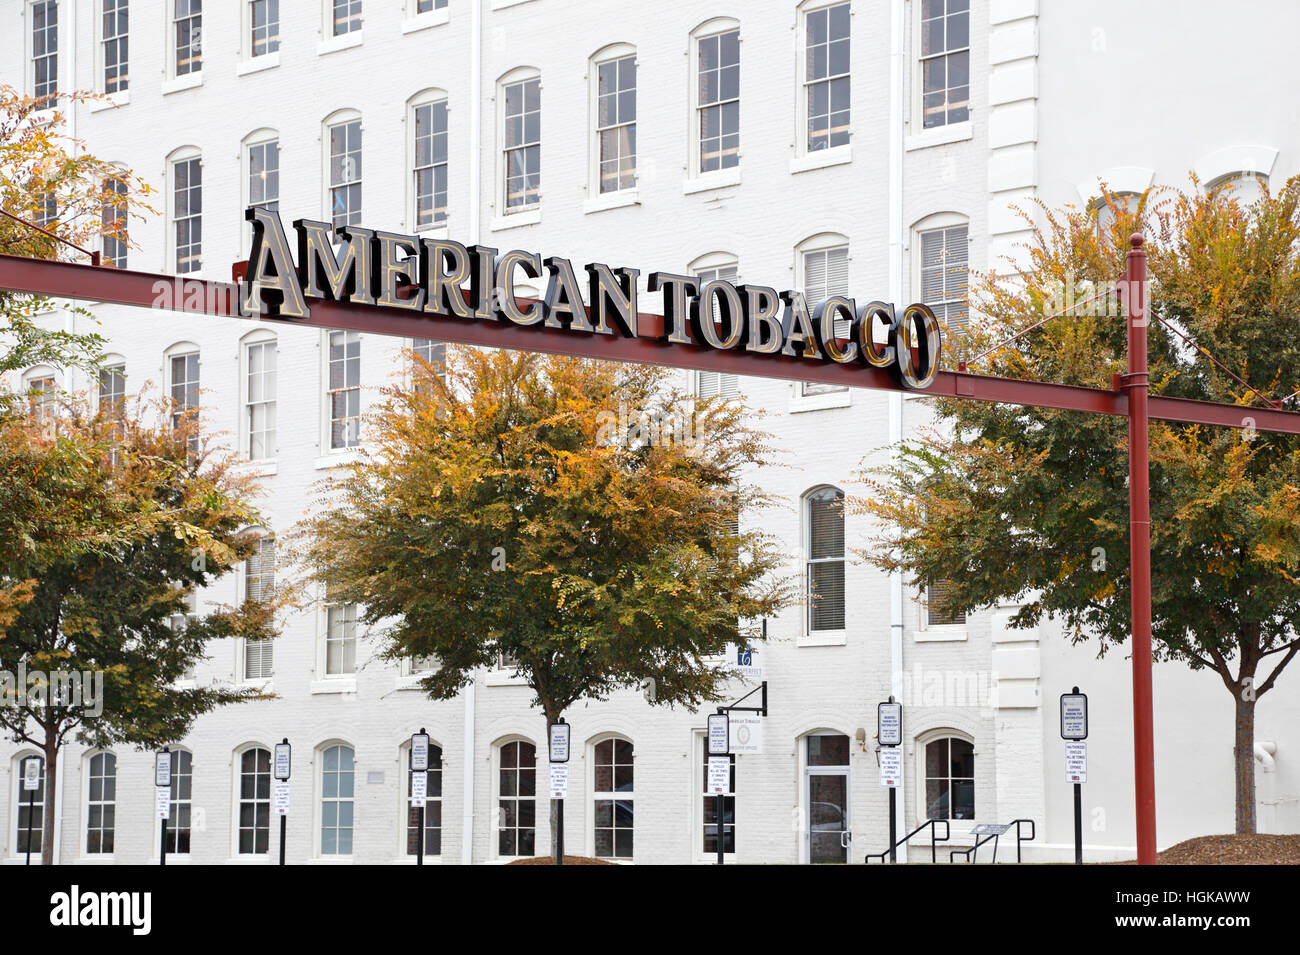 American Tobacco Warehouse district, Durham, North Carolina. Old tobacco factories converted into business space. - Stock Image